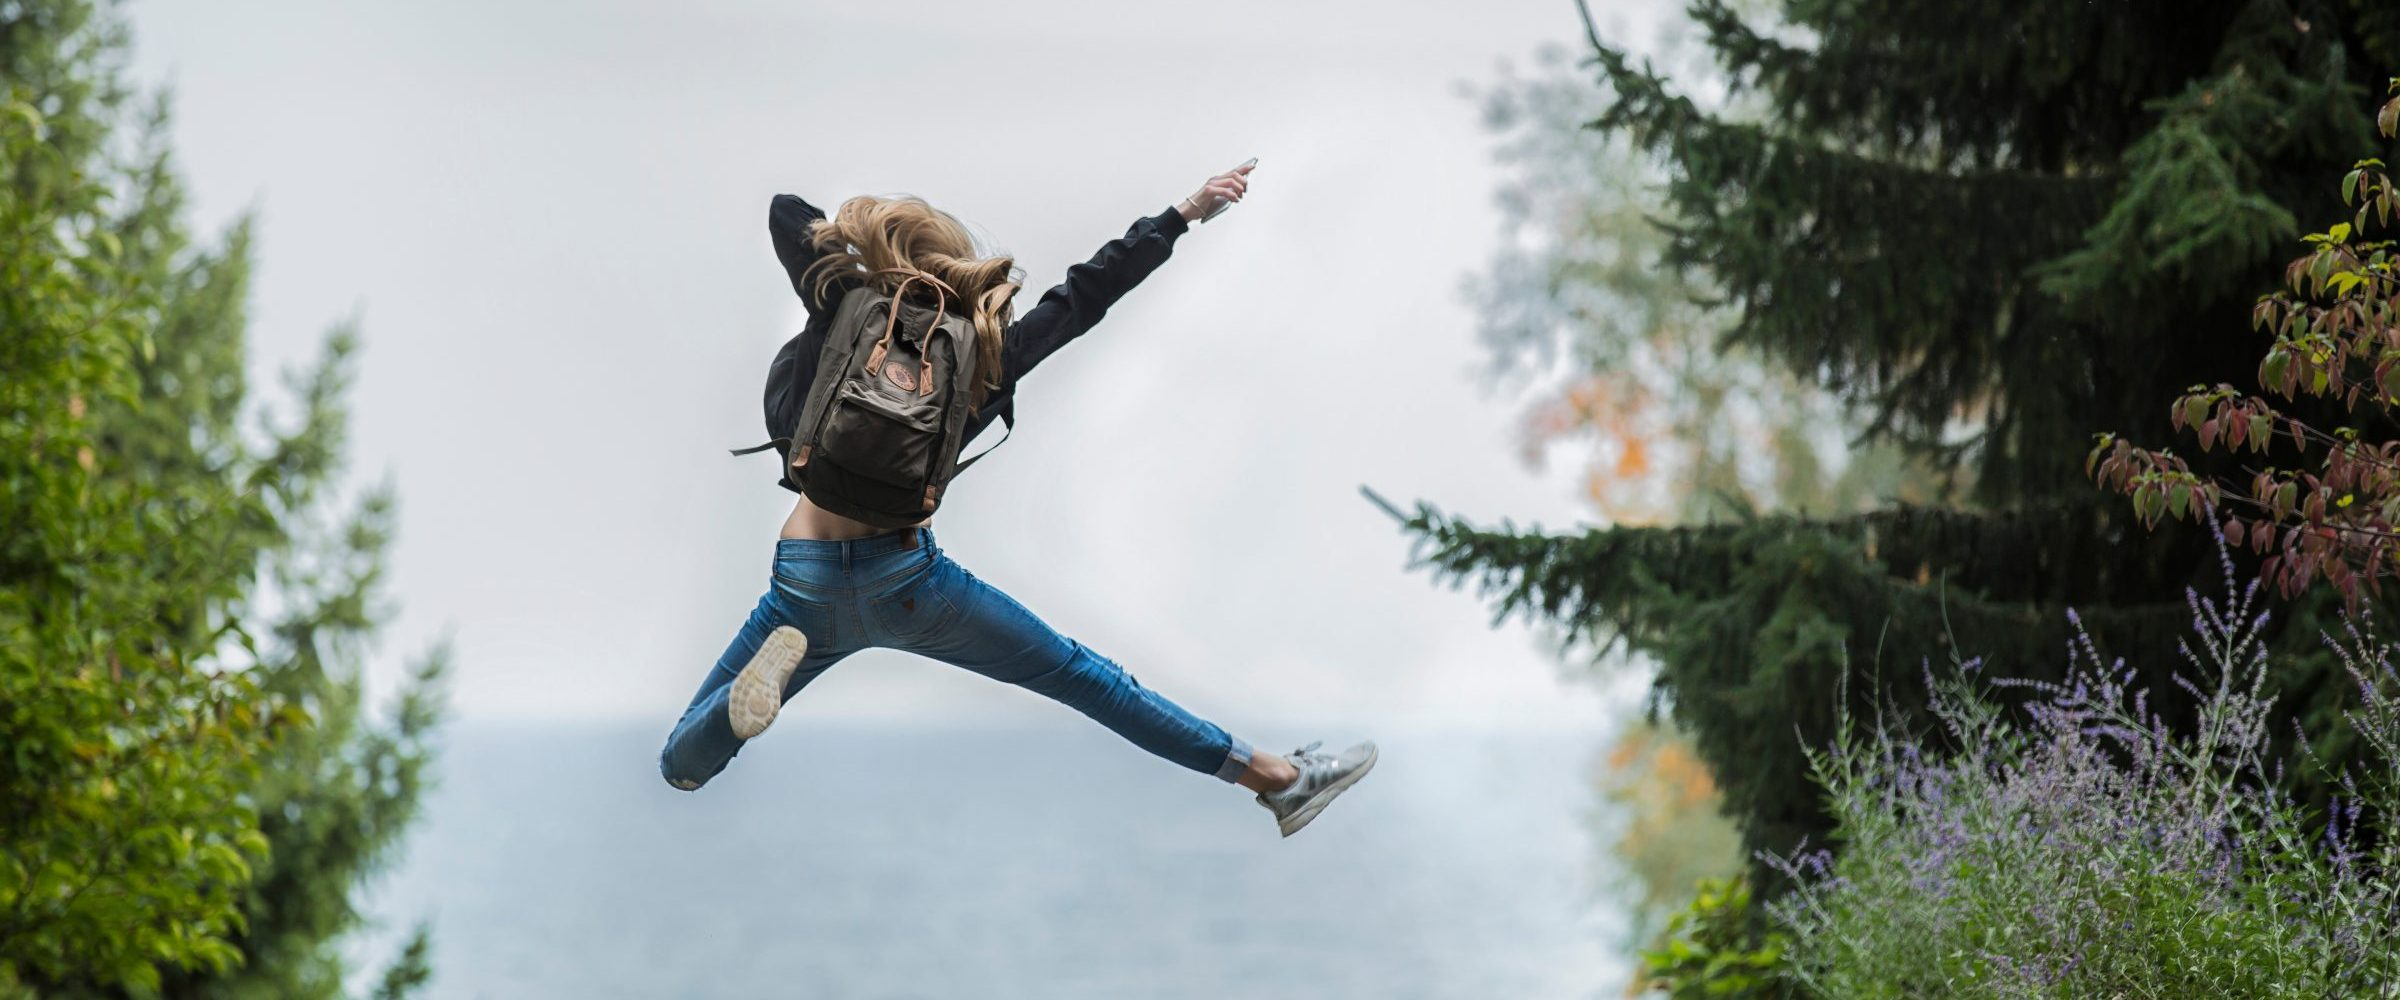 canva-woman-jumping-wearing-green-backpack